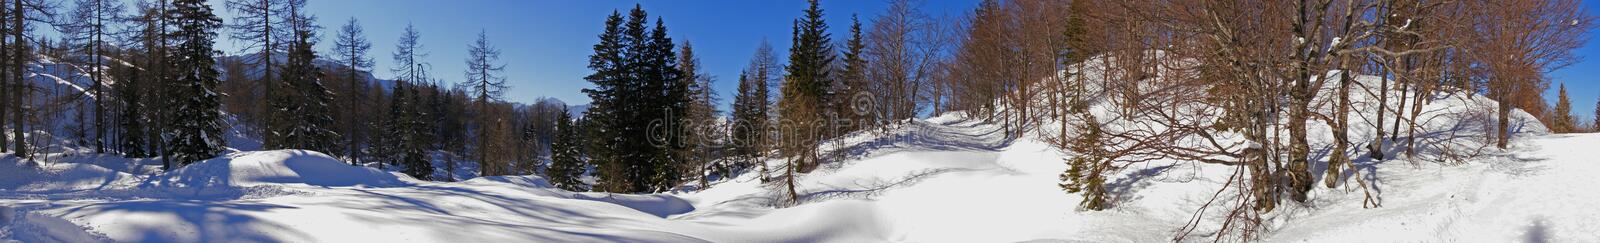 Snowy alpine forest panorama stock images